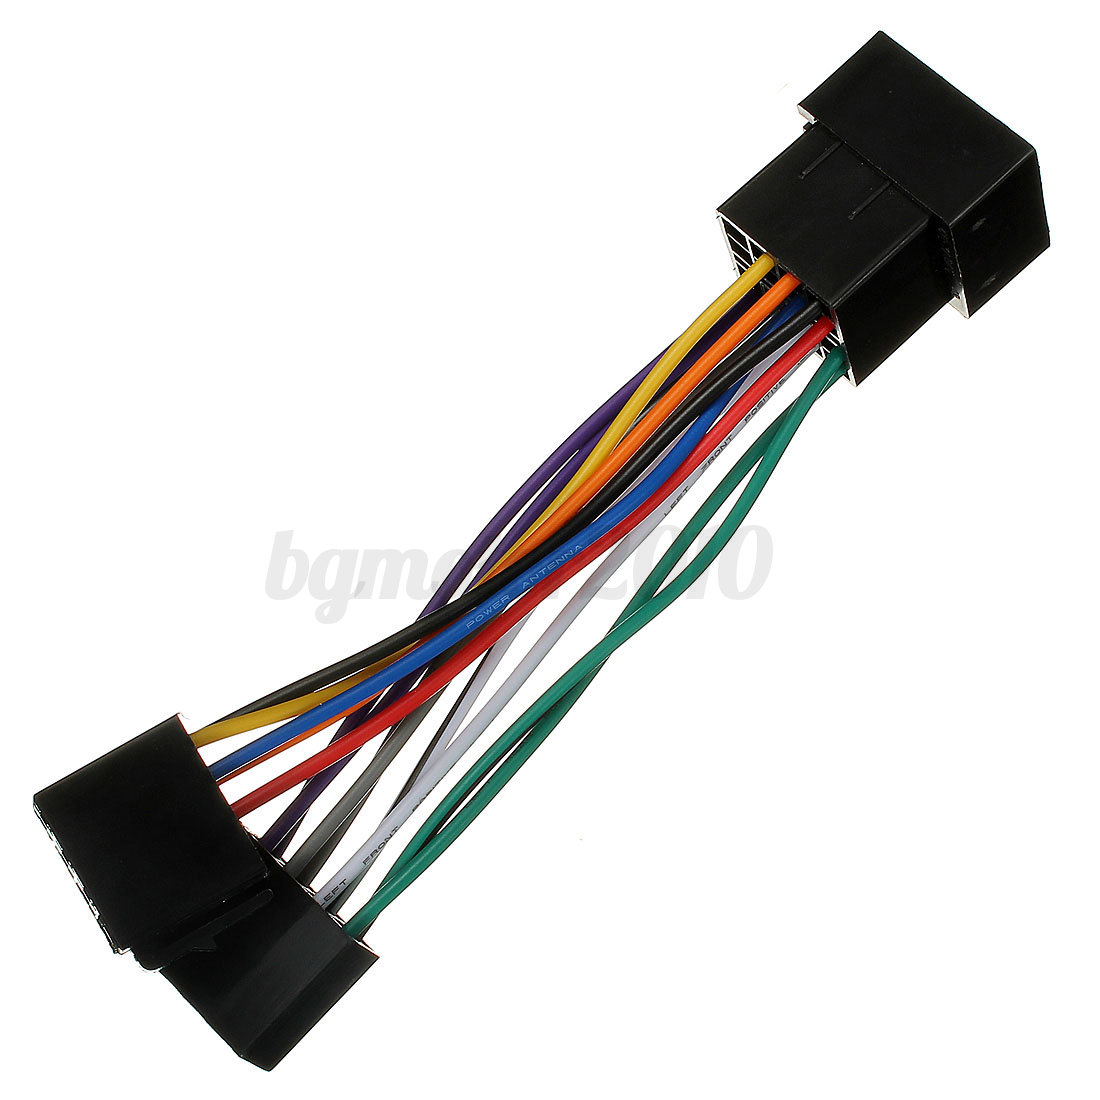 Adapter Cable Iso Autoradio Stereo For Peugeot 106 206 306